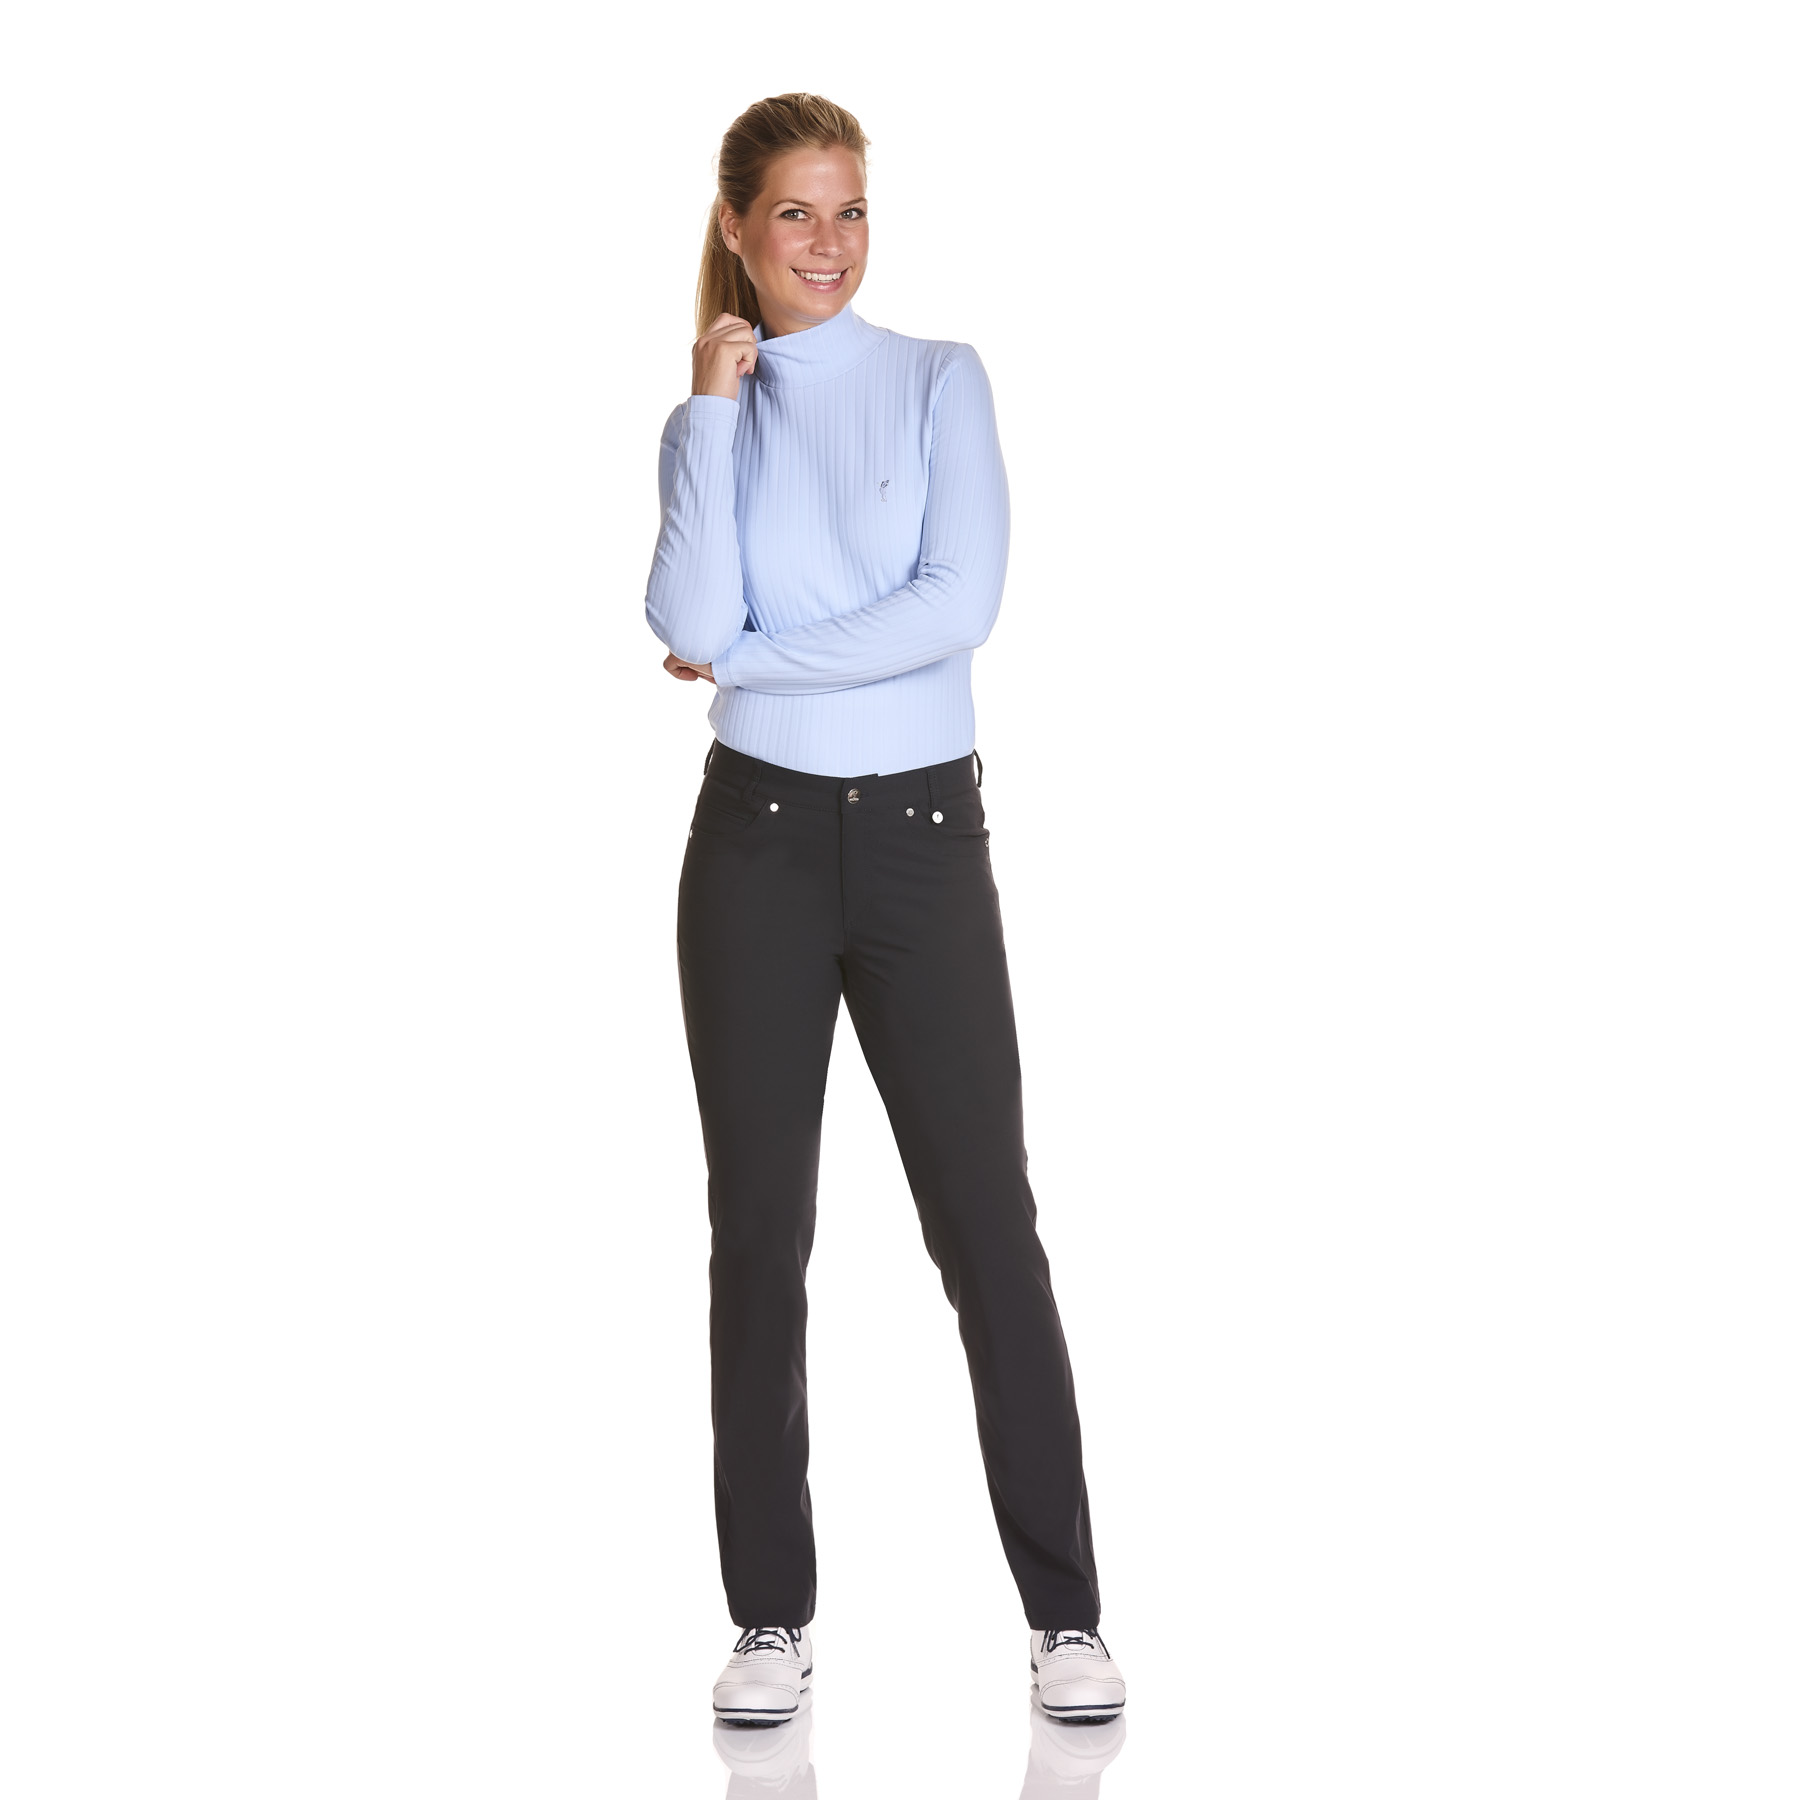 Damen Dry Comfort Rollkragen Stretchunterzieher in Slim Fit